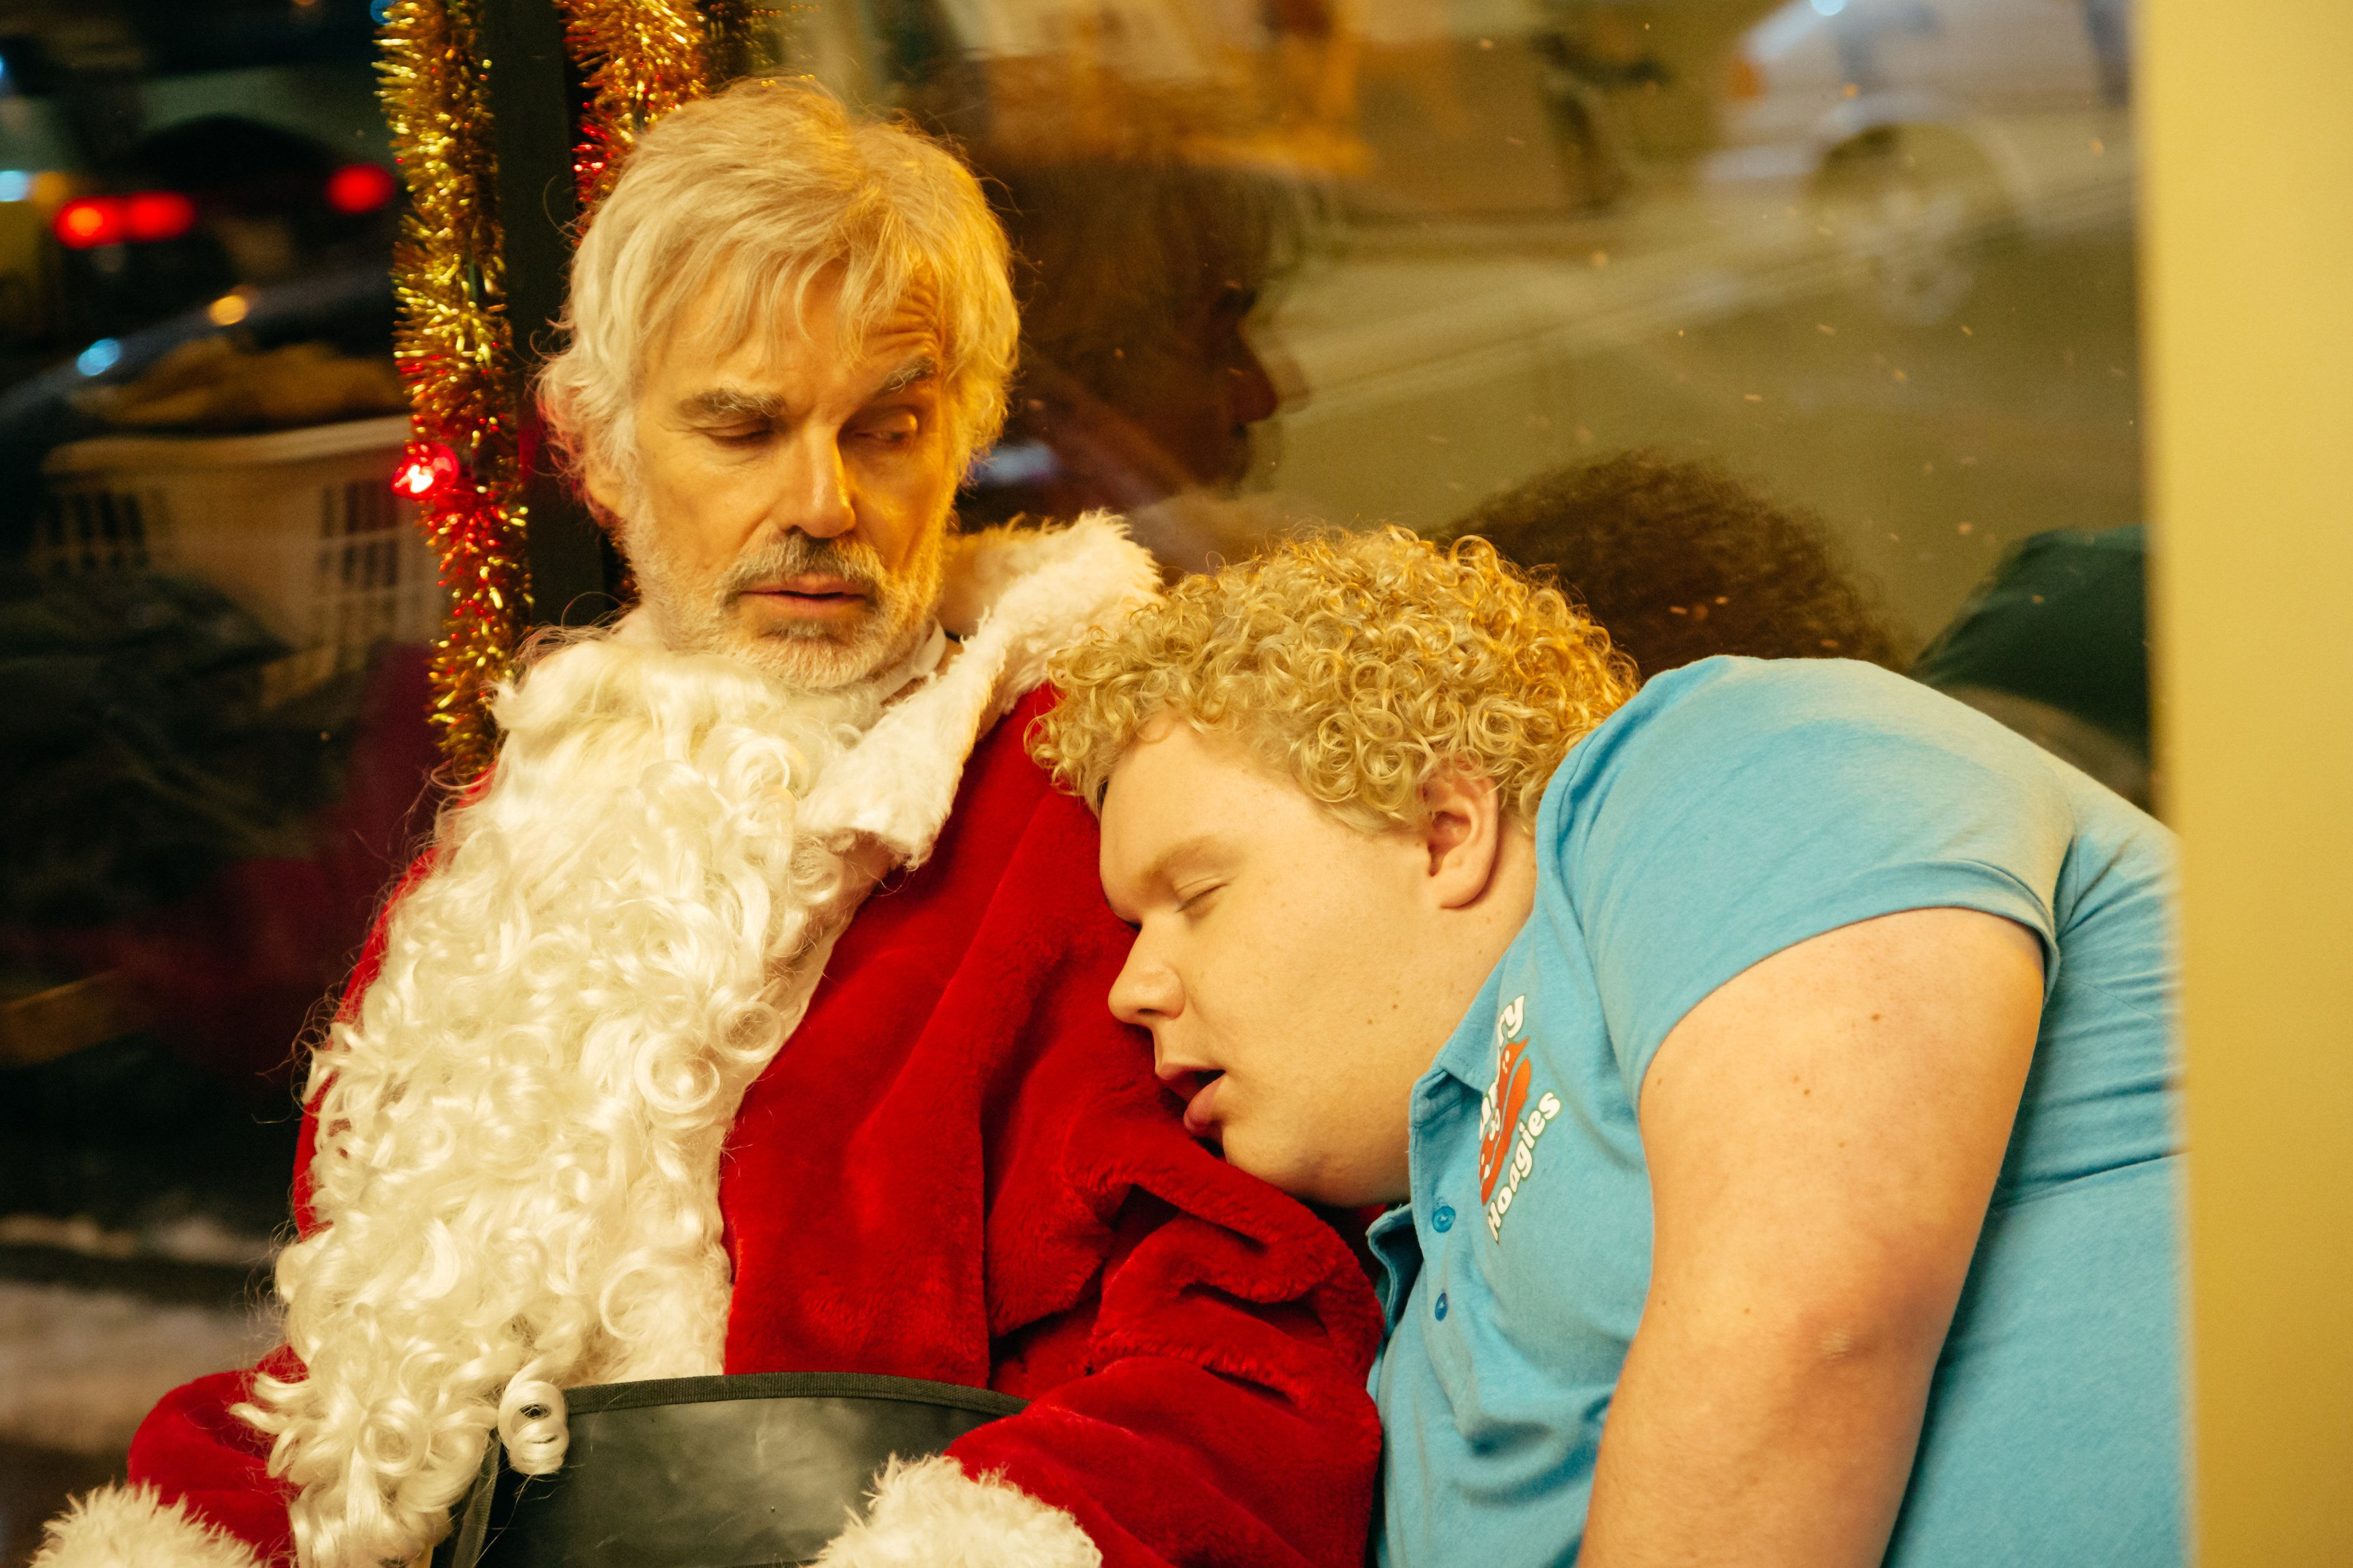 BS2-05175_CROP (l-r) Billy Bob Thornton stars as Willie Soke and Brett Kelly as Thurman Merman in BAD SANTA 2, a Broad Green Pictures and MIRAMAX release. Credit: Jan Thijs / Broad Green Pictures / Miramax